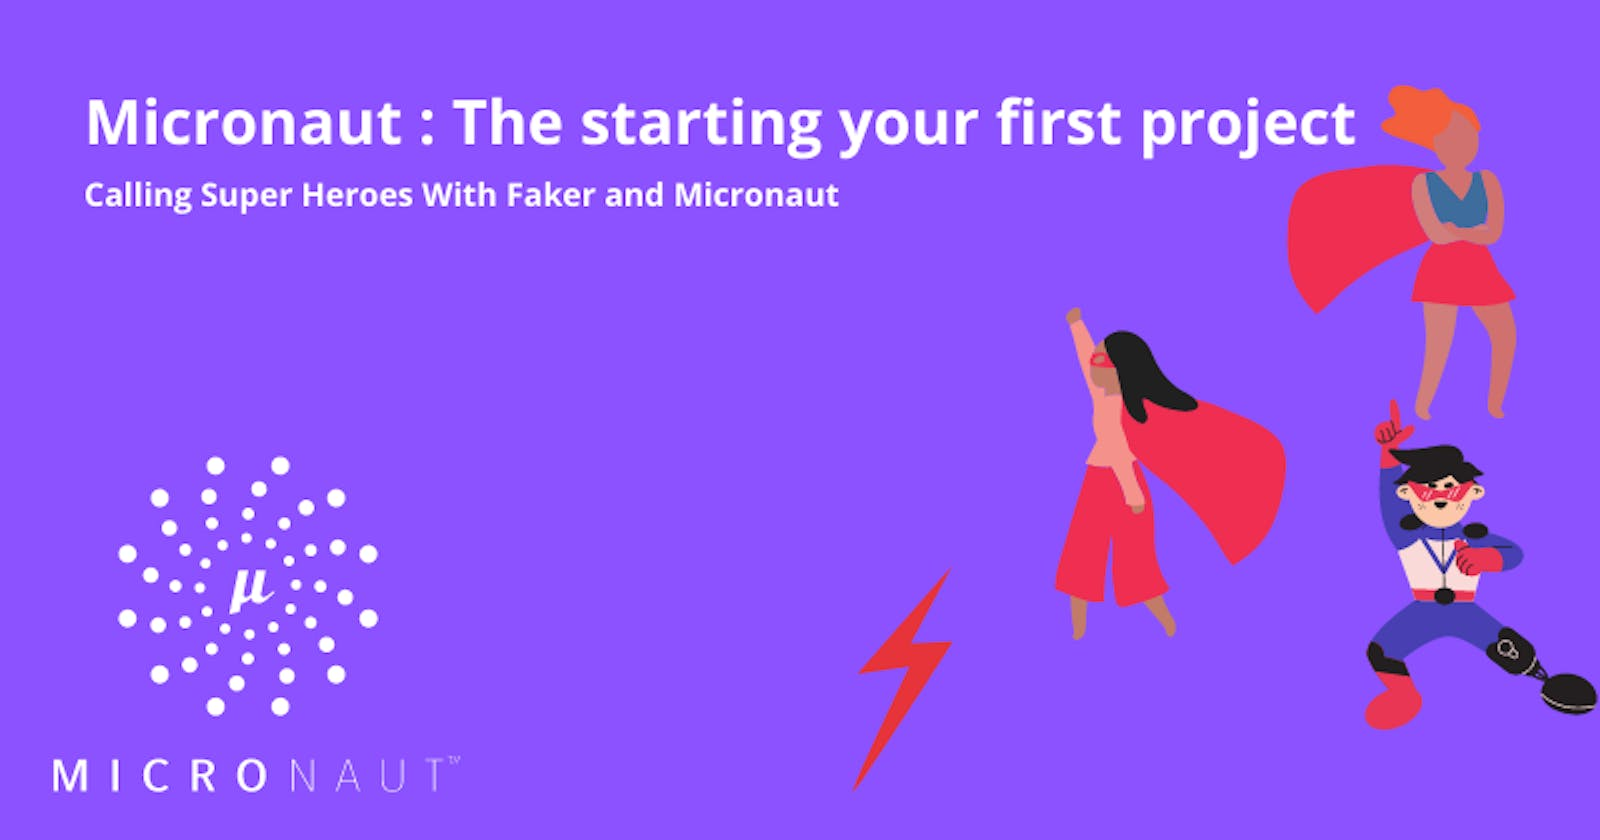 Micronaut : The starting your first project